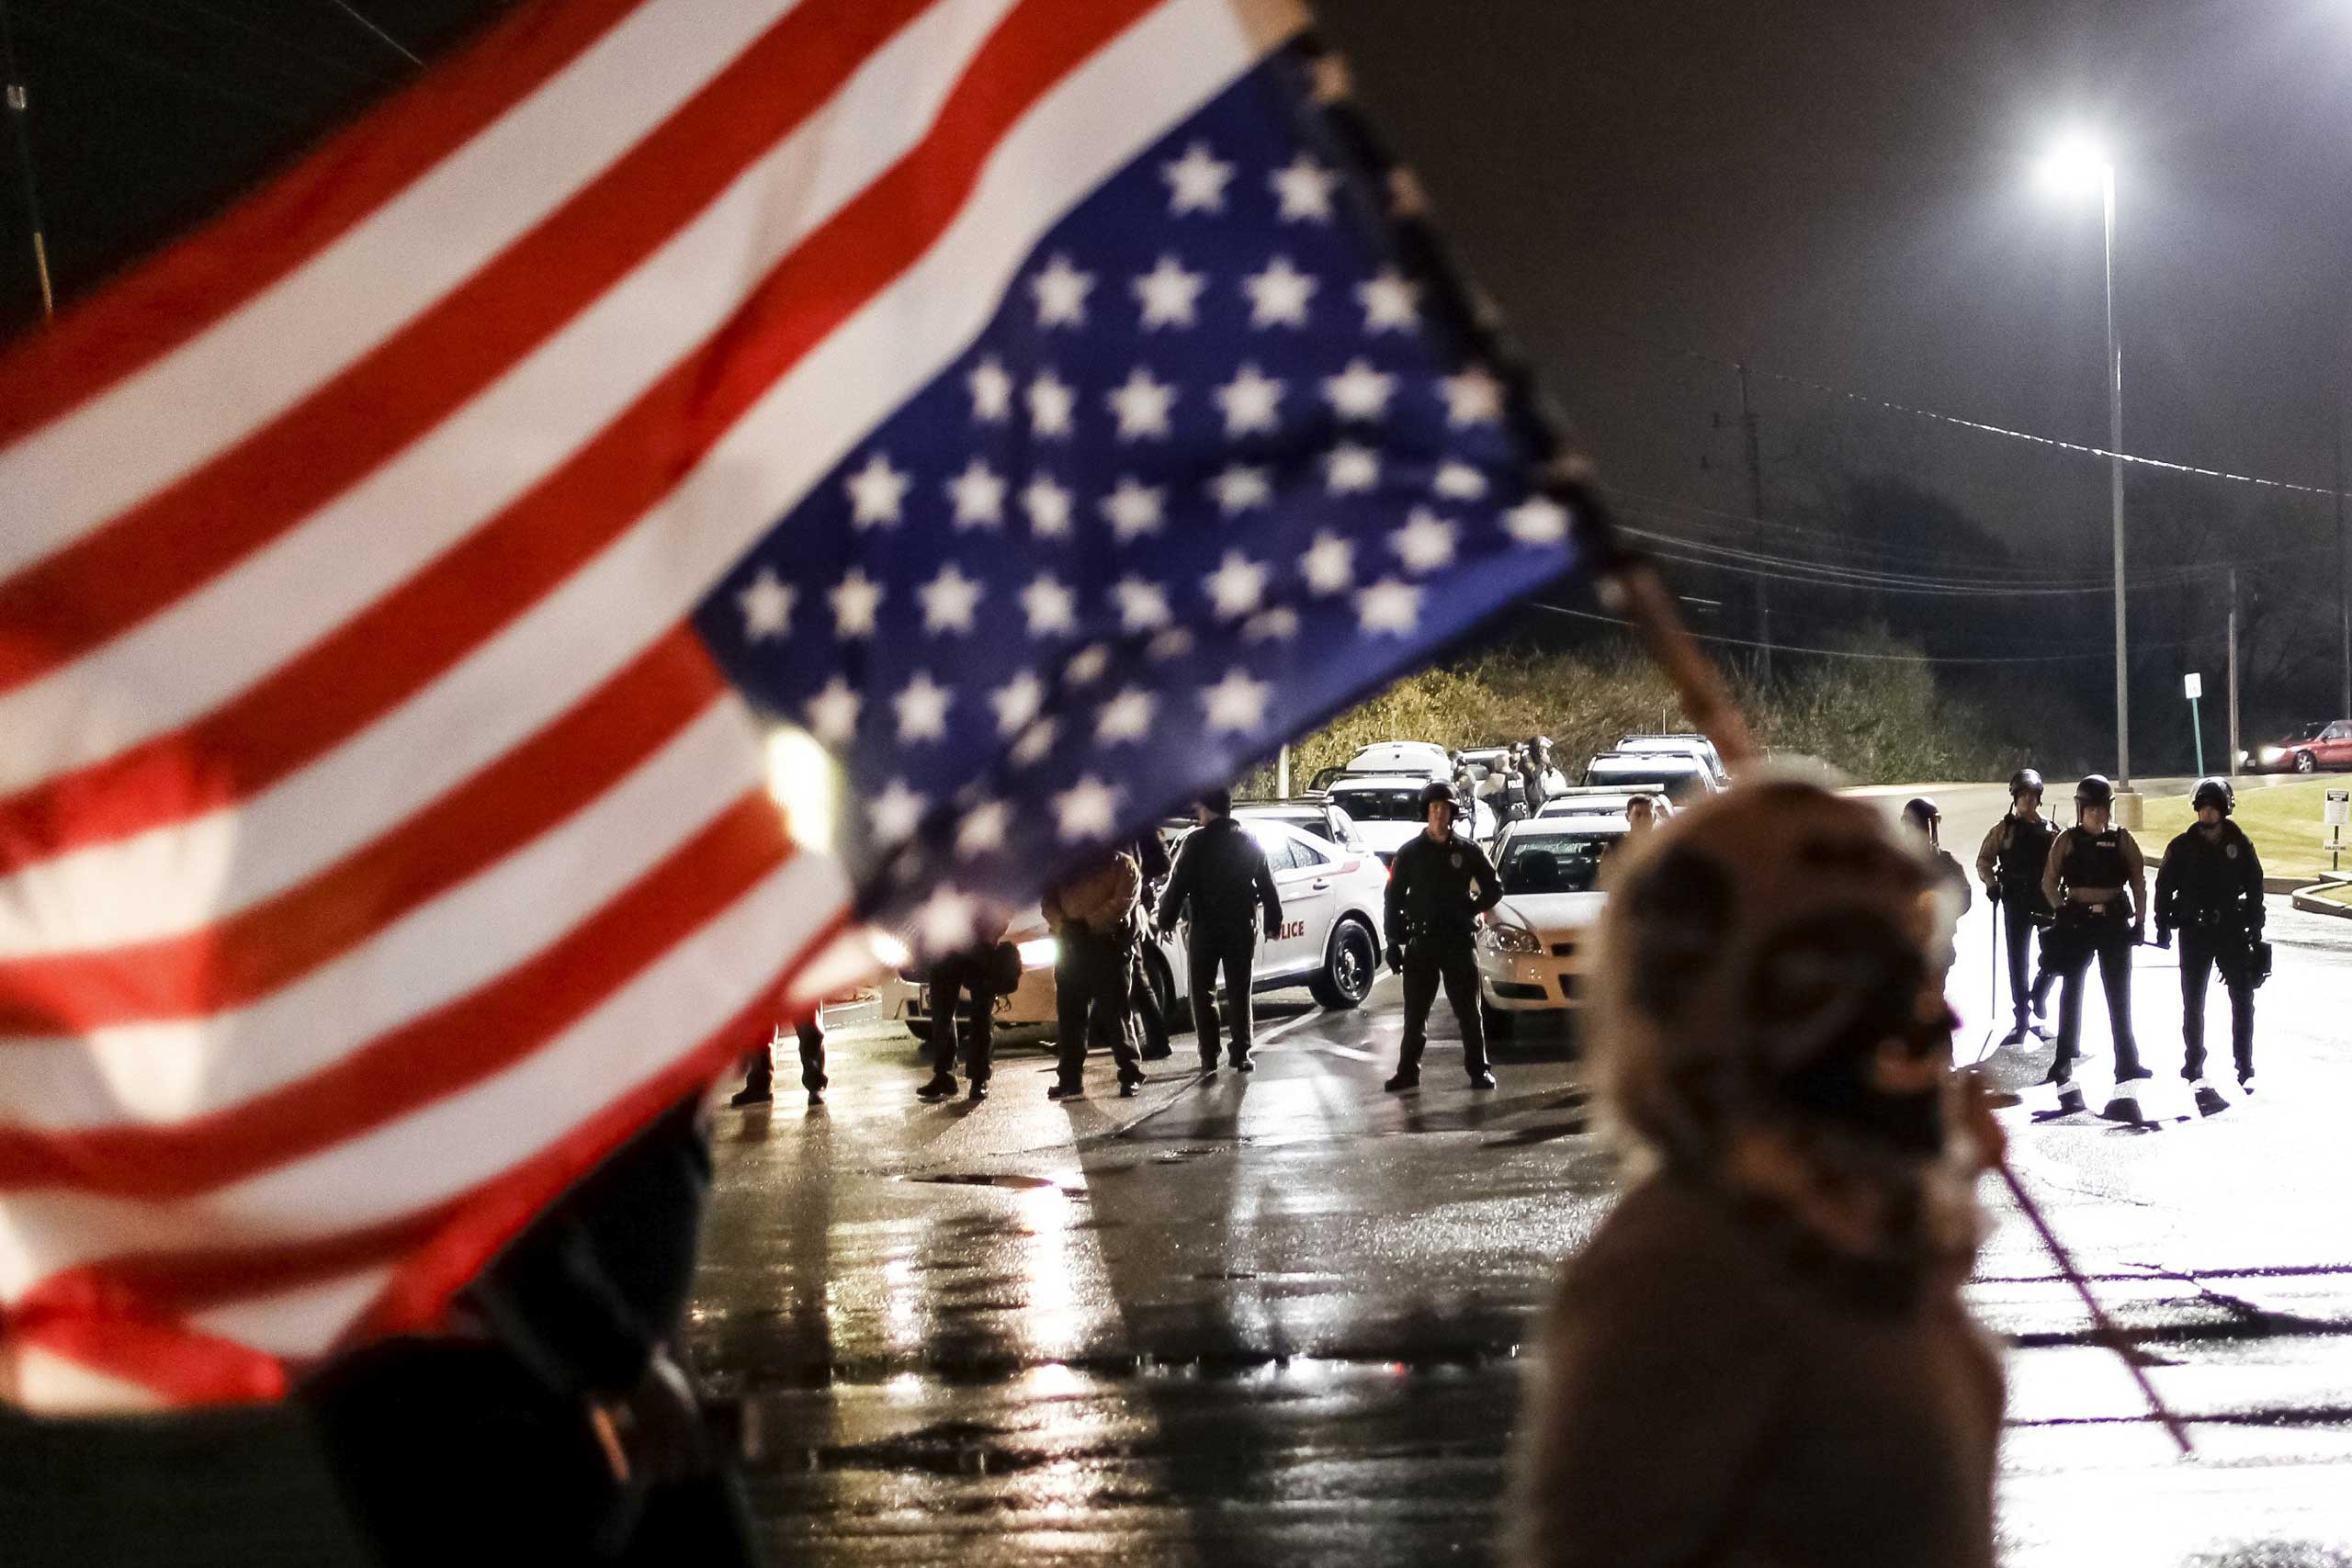 Police watch as a protester with an upside-down American flag marches along West Florissant Avenue in Ferguson, Mo., Nov. 22, 2014